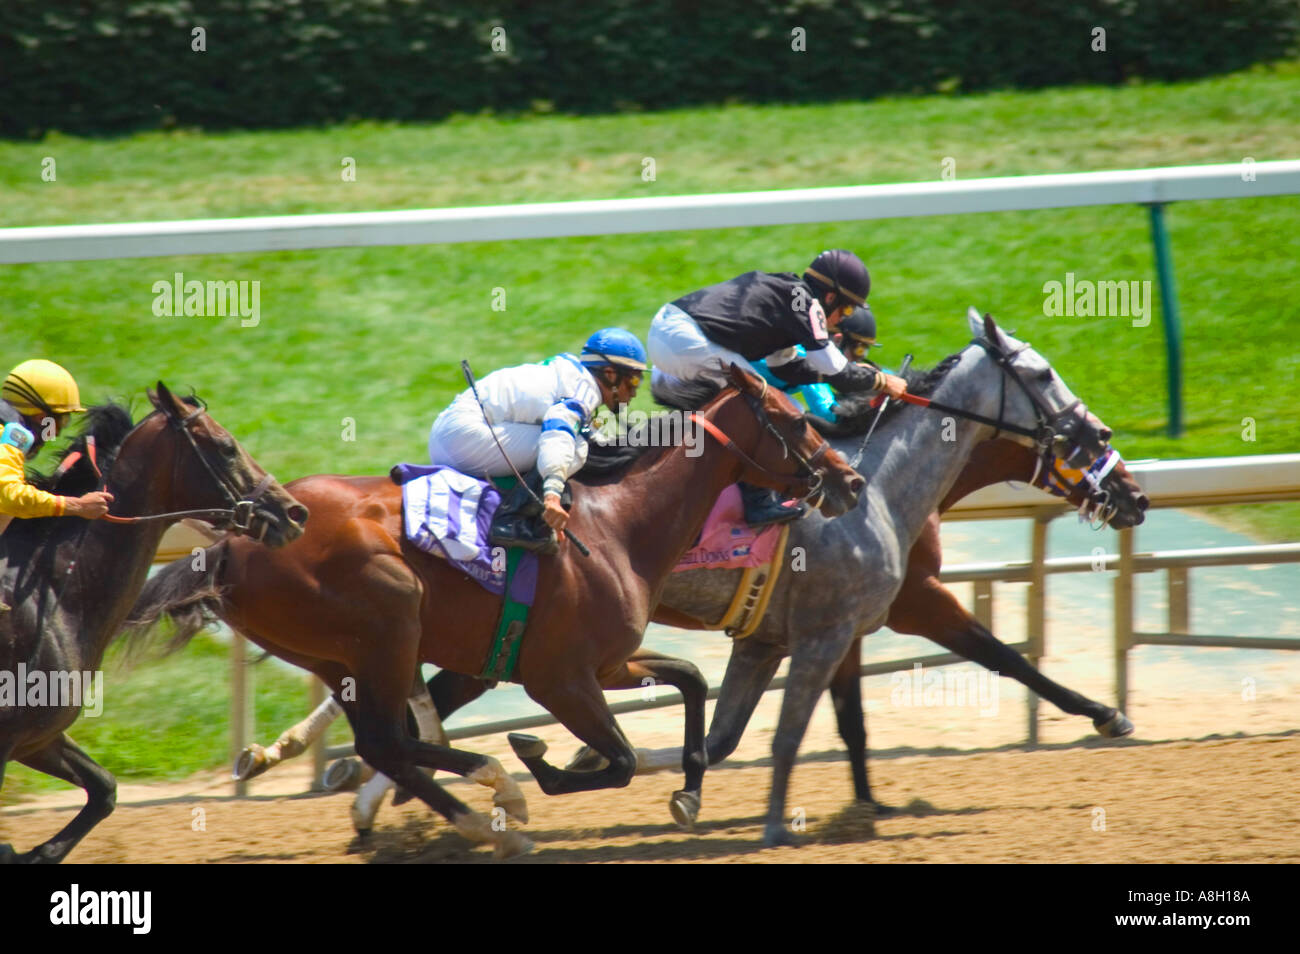 Thoroughbred race horses sprinting for the finish line down the home stretch during race at Churchill Downs in Louisville KY - Stock Image